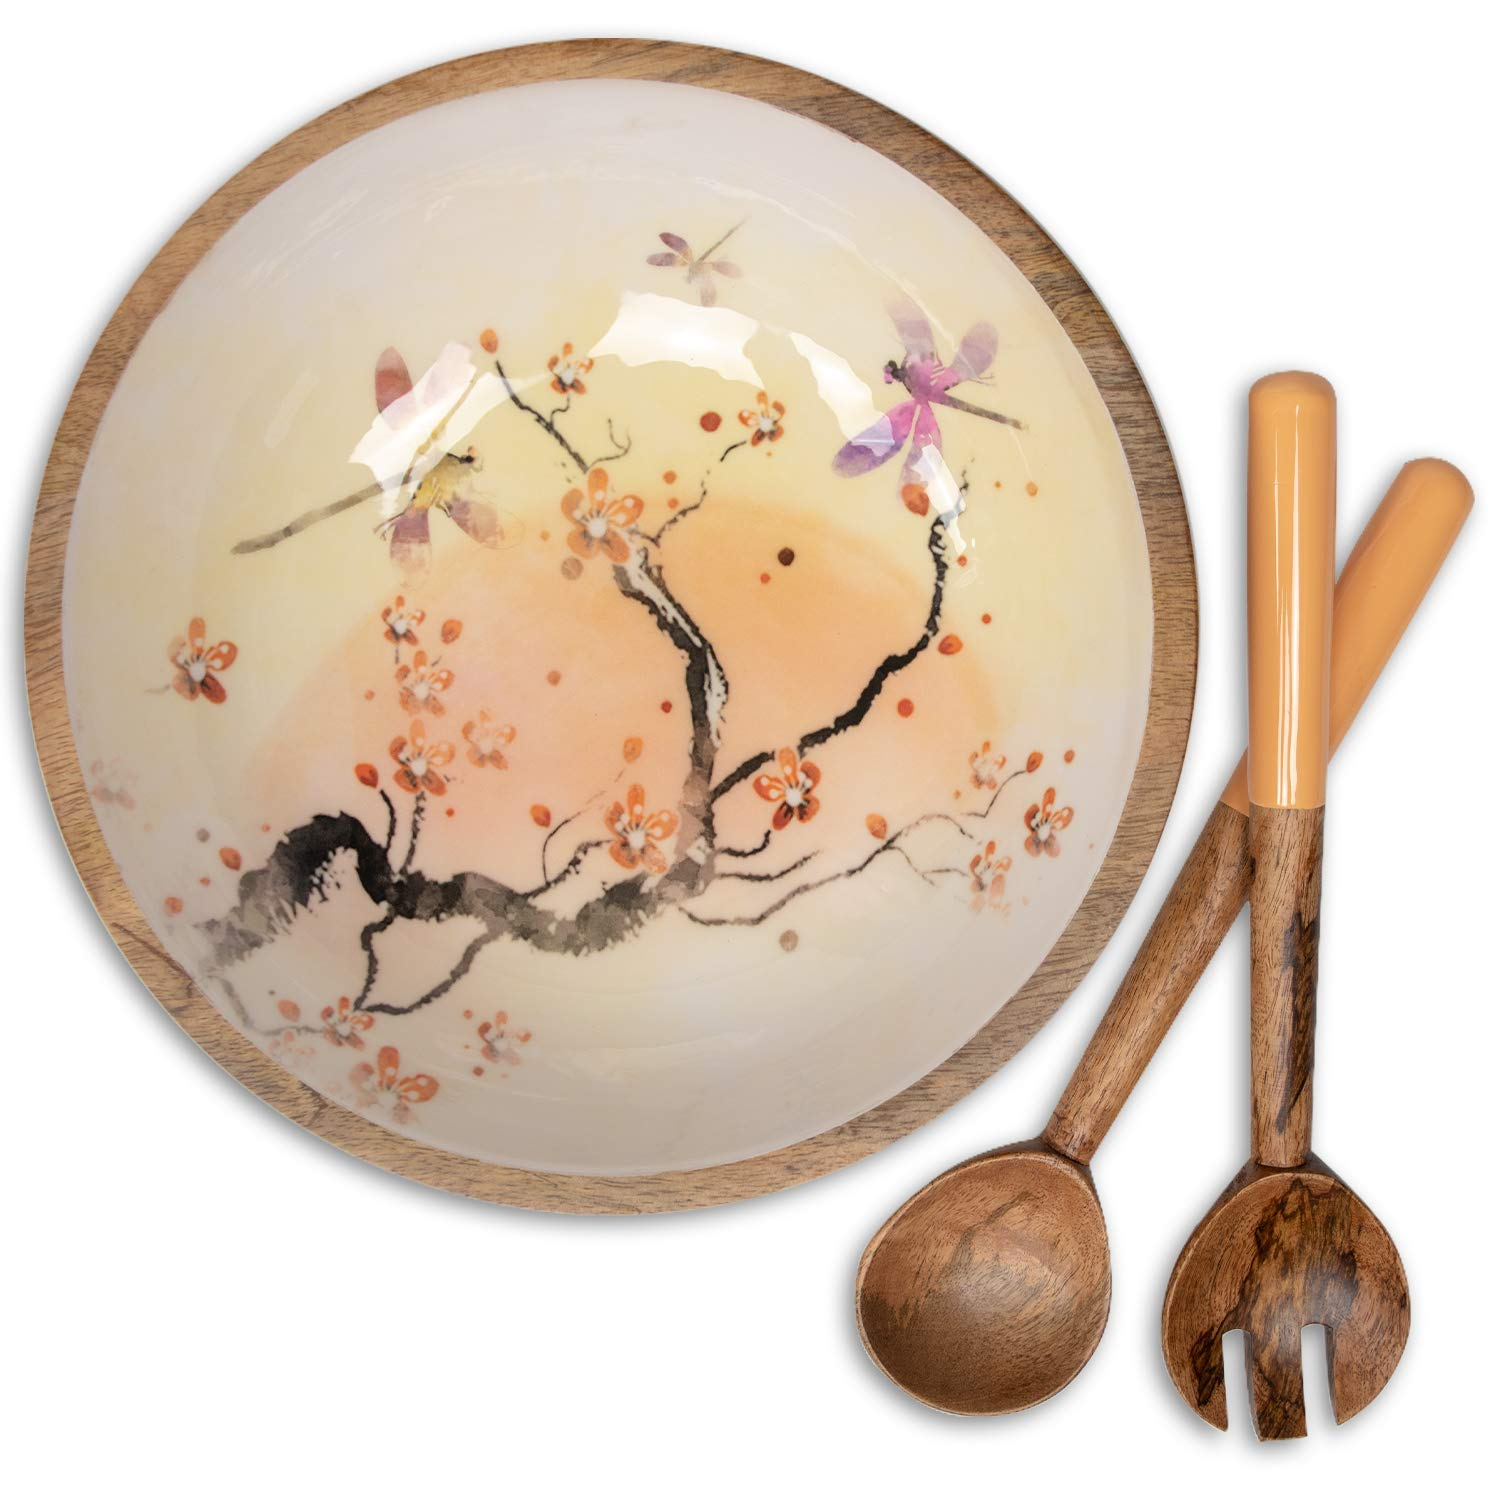 Wood Salad Bowl Set with Servers - Large 12 Inch Round Mango Wood Serving Bowl with Spoons for Soups, Fruit, Pasta, Caesar, Tossed, and Mixed Salads | Natural Mango Wood Serving Bowl Set by ELEETS COLLECTION (Image #8)